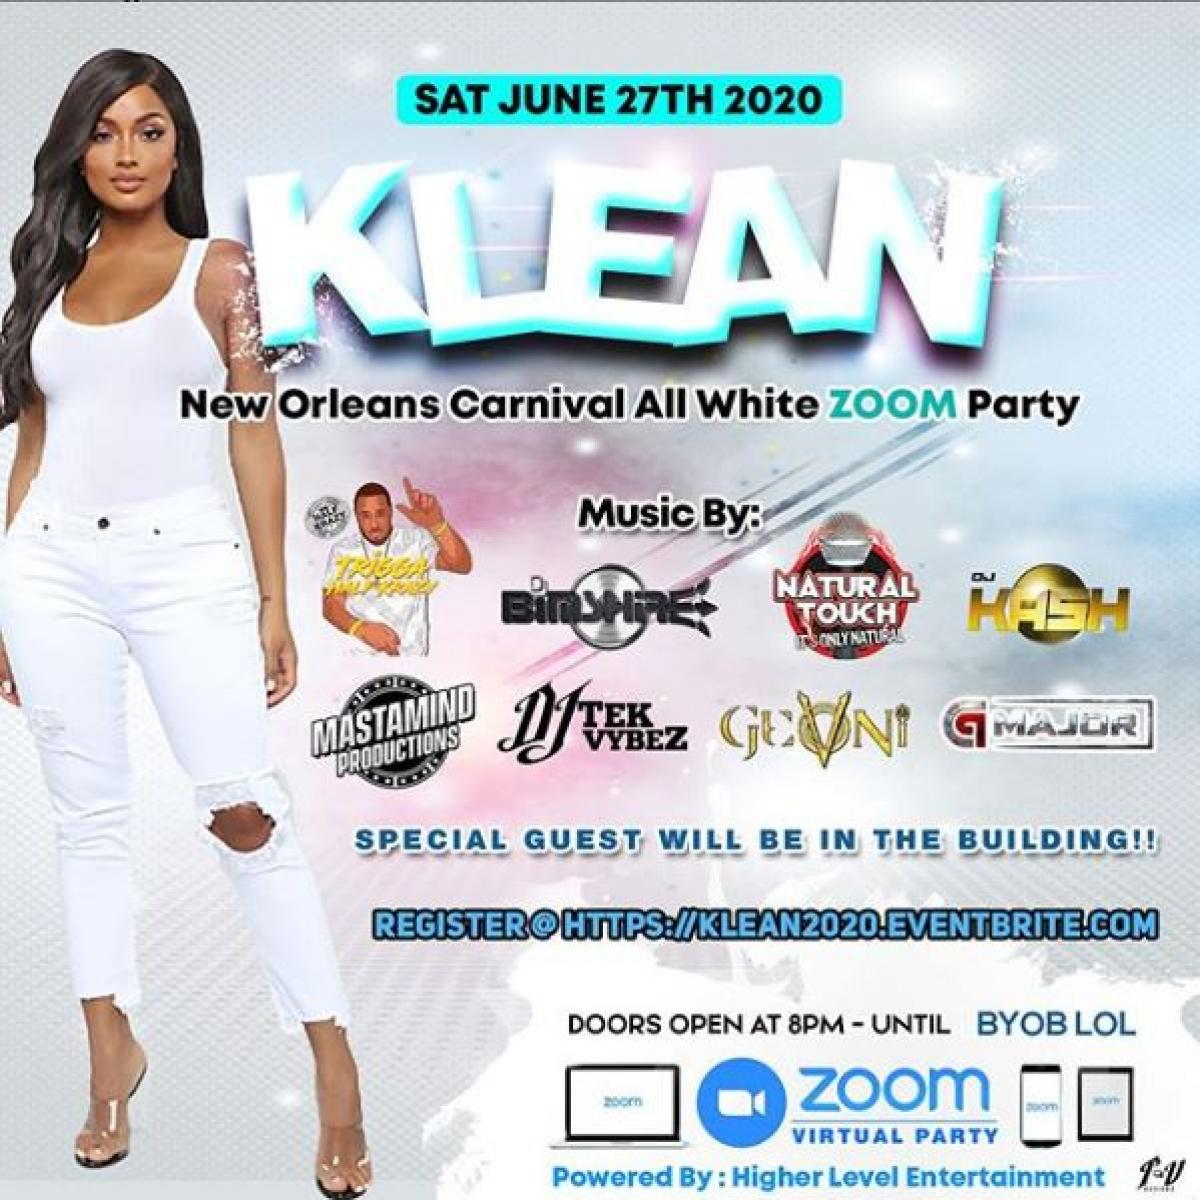 Klean - Nola Caribbean Carnival ''All White '' Virtual Party flyer or graphic.